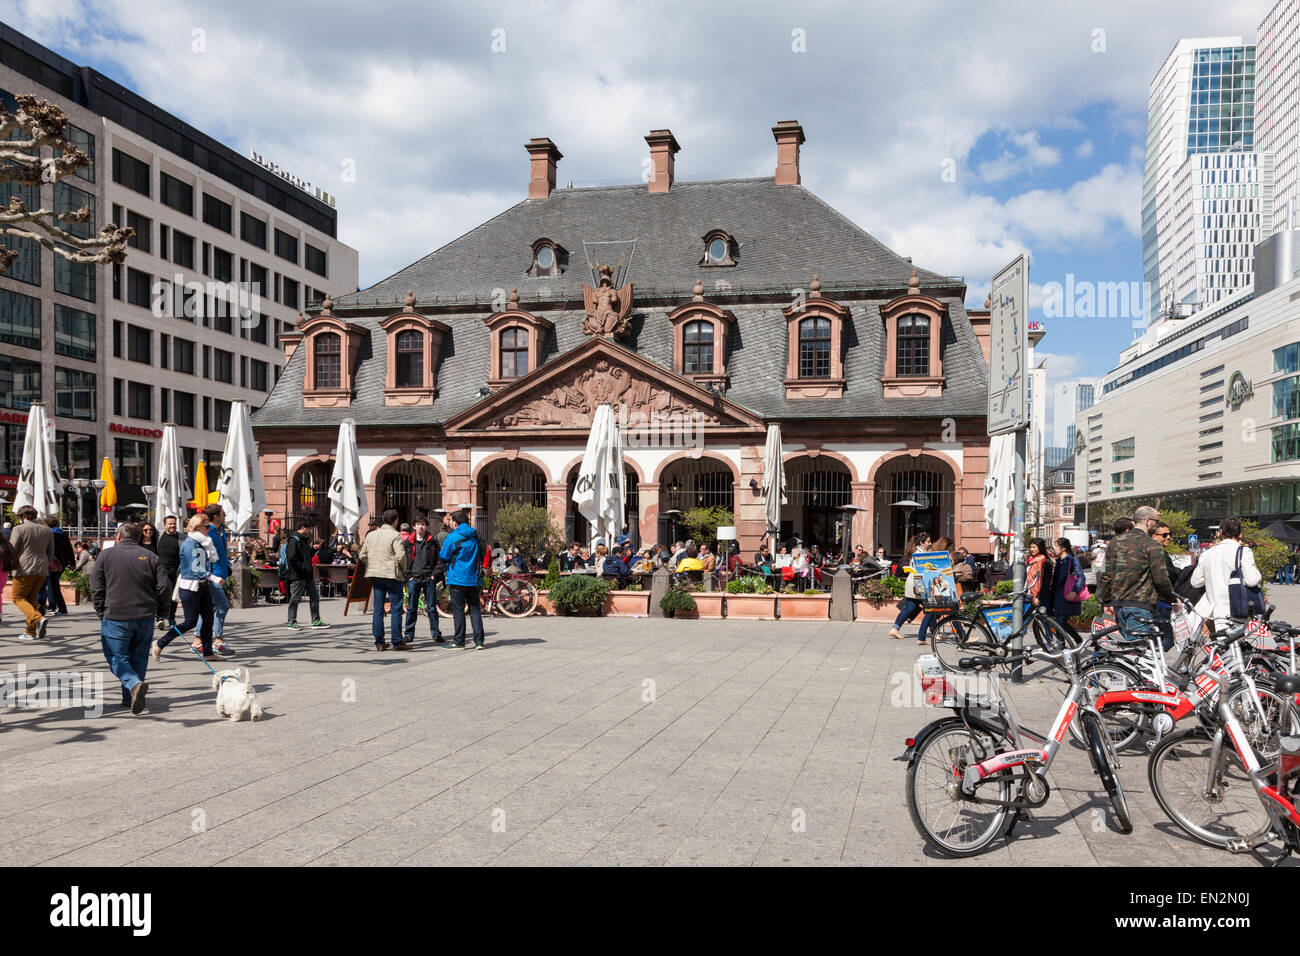 Historic Hauptwache (guard house) building in the city of Frankfurt Main, Germany Stock Photo